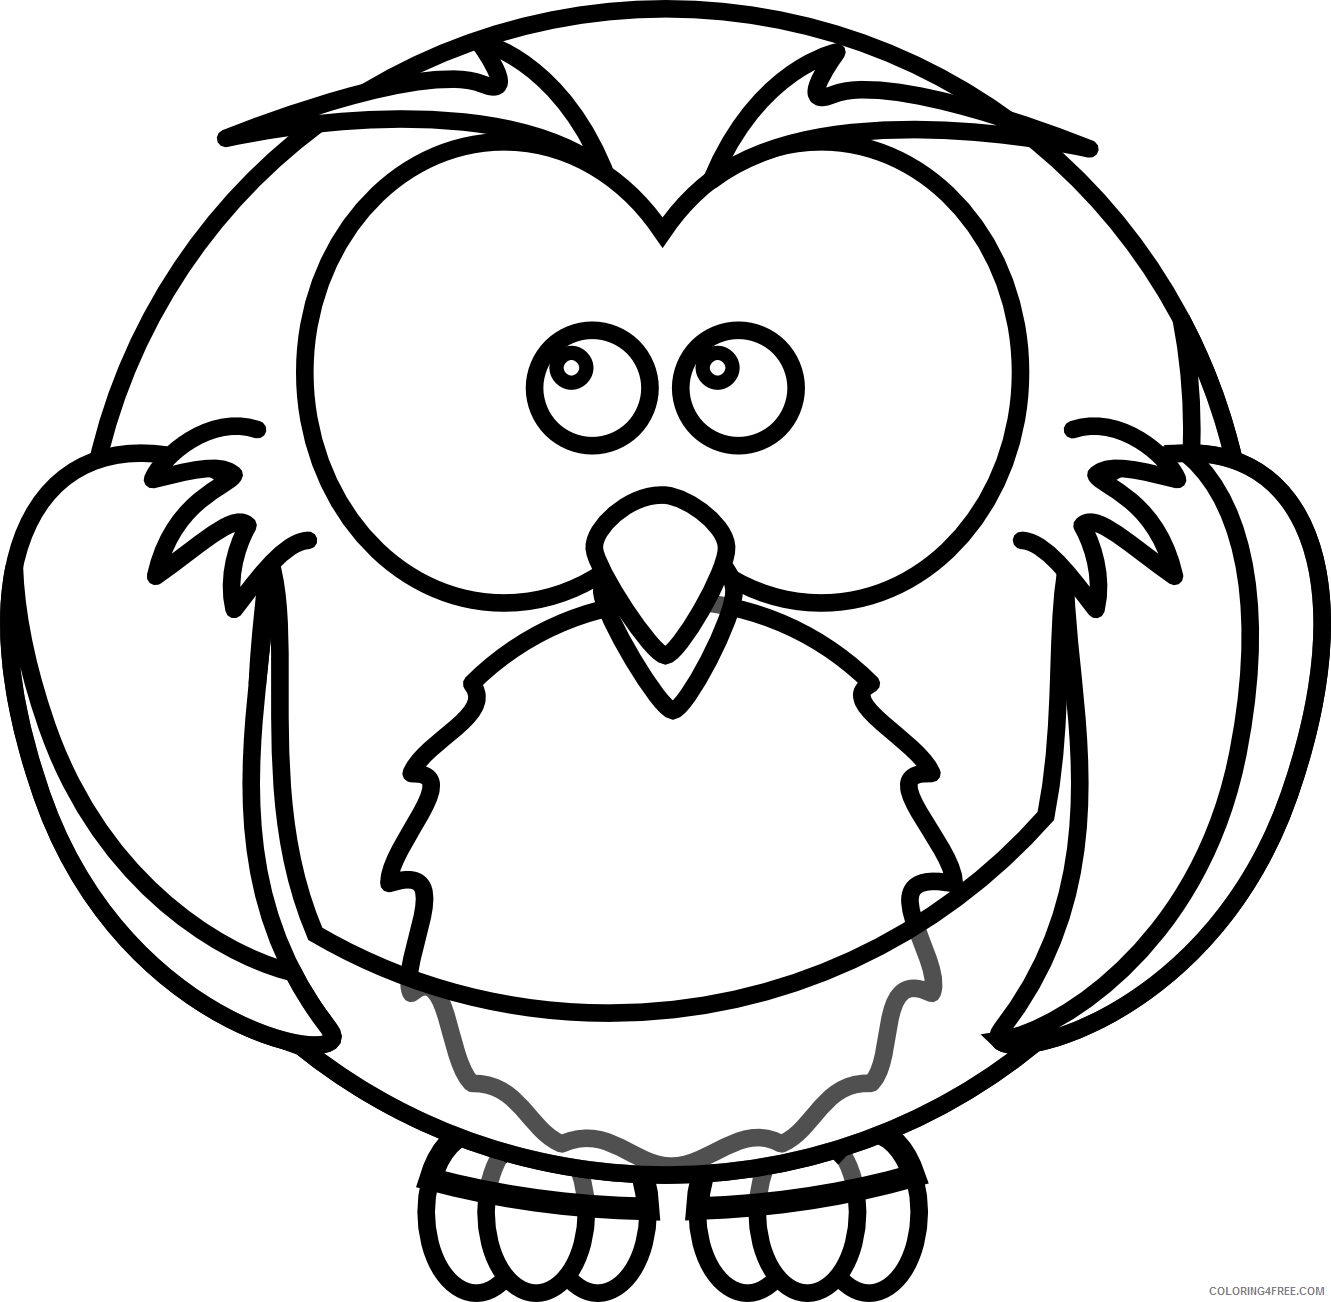 Owl Outline Coloring Pages owl black and Printable Coloring4free